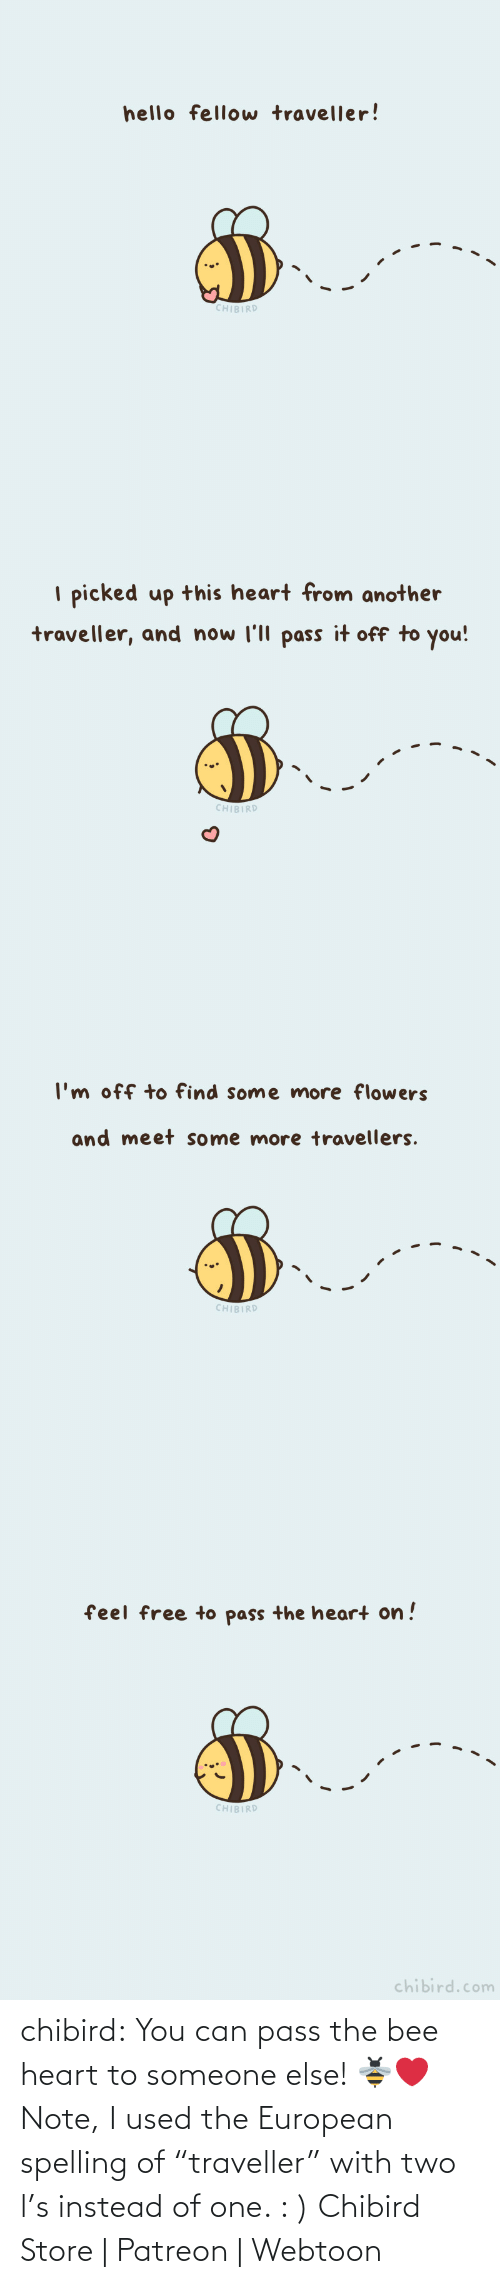 "Instead Of: chibird: You can pass the bee heart to someone else! 🐝❤️️  Note, I used the European spelling of ""traveller"" with two l's instead of one. : )   Chibird Store 